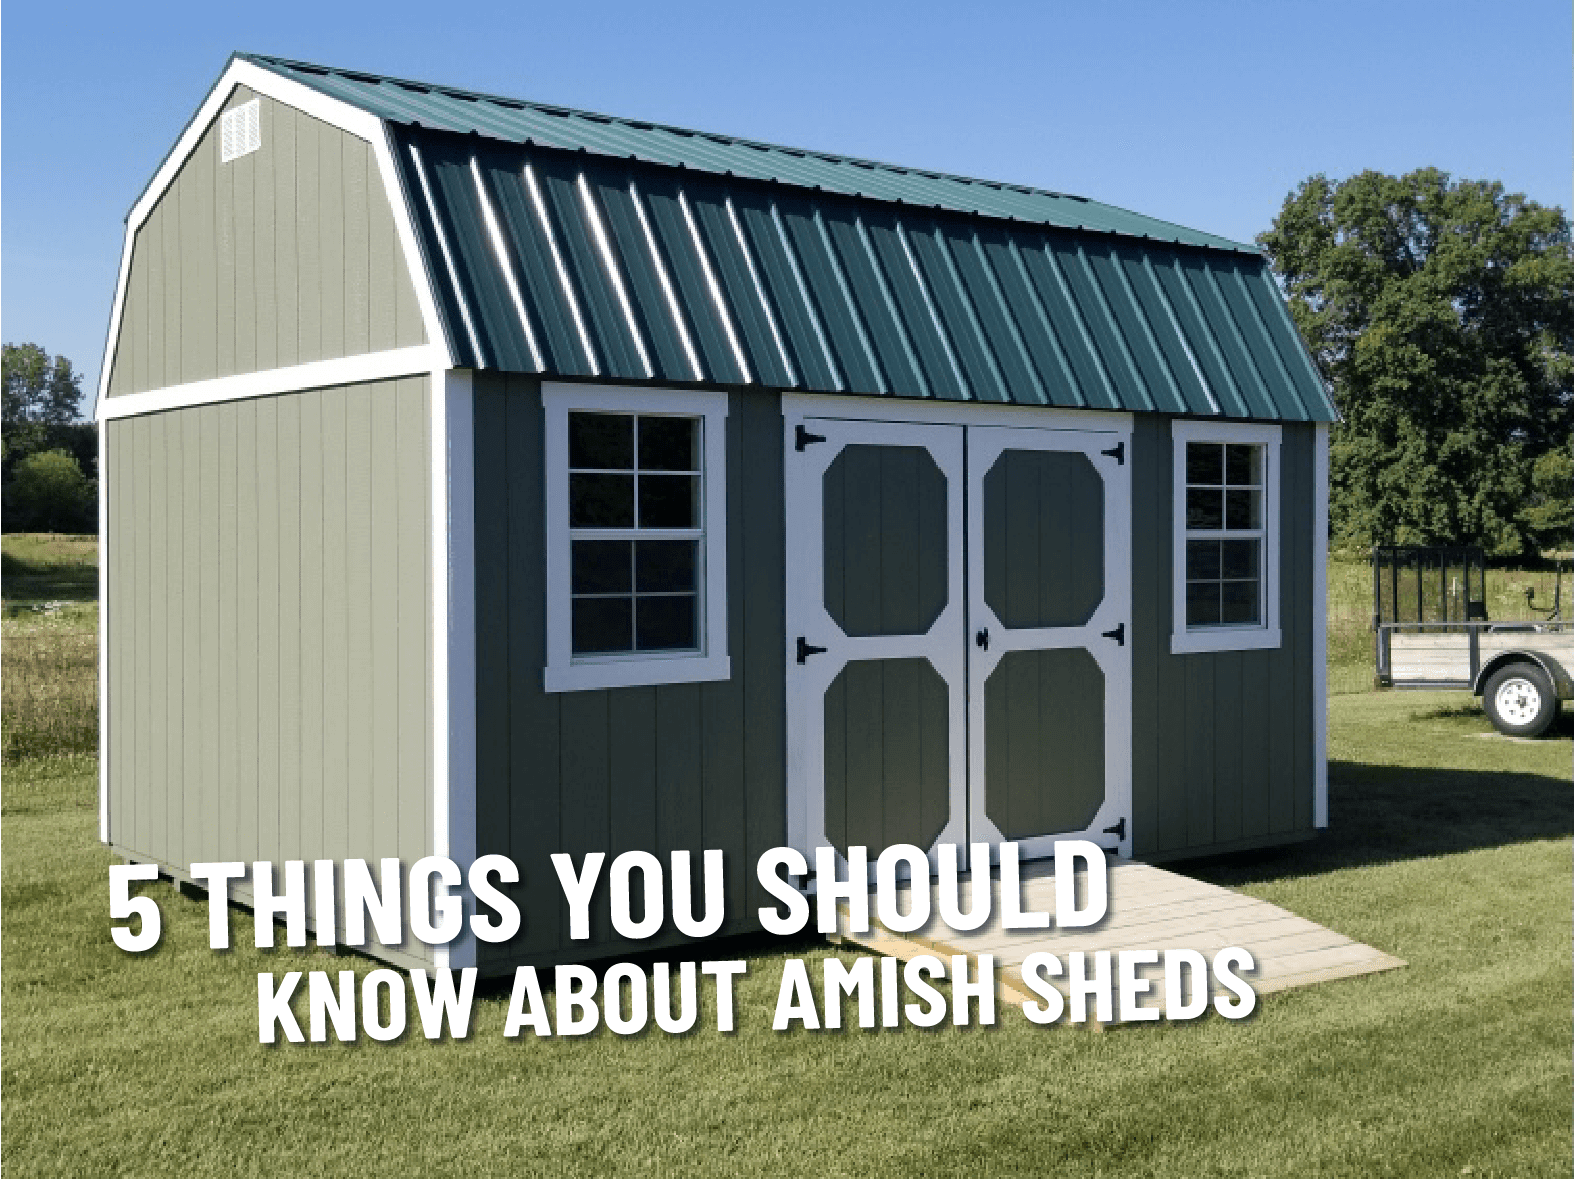 5 Things You Should Know About Amish Sheds